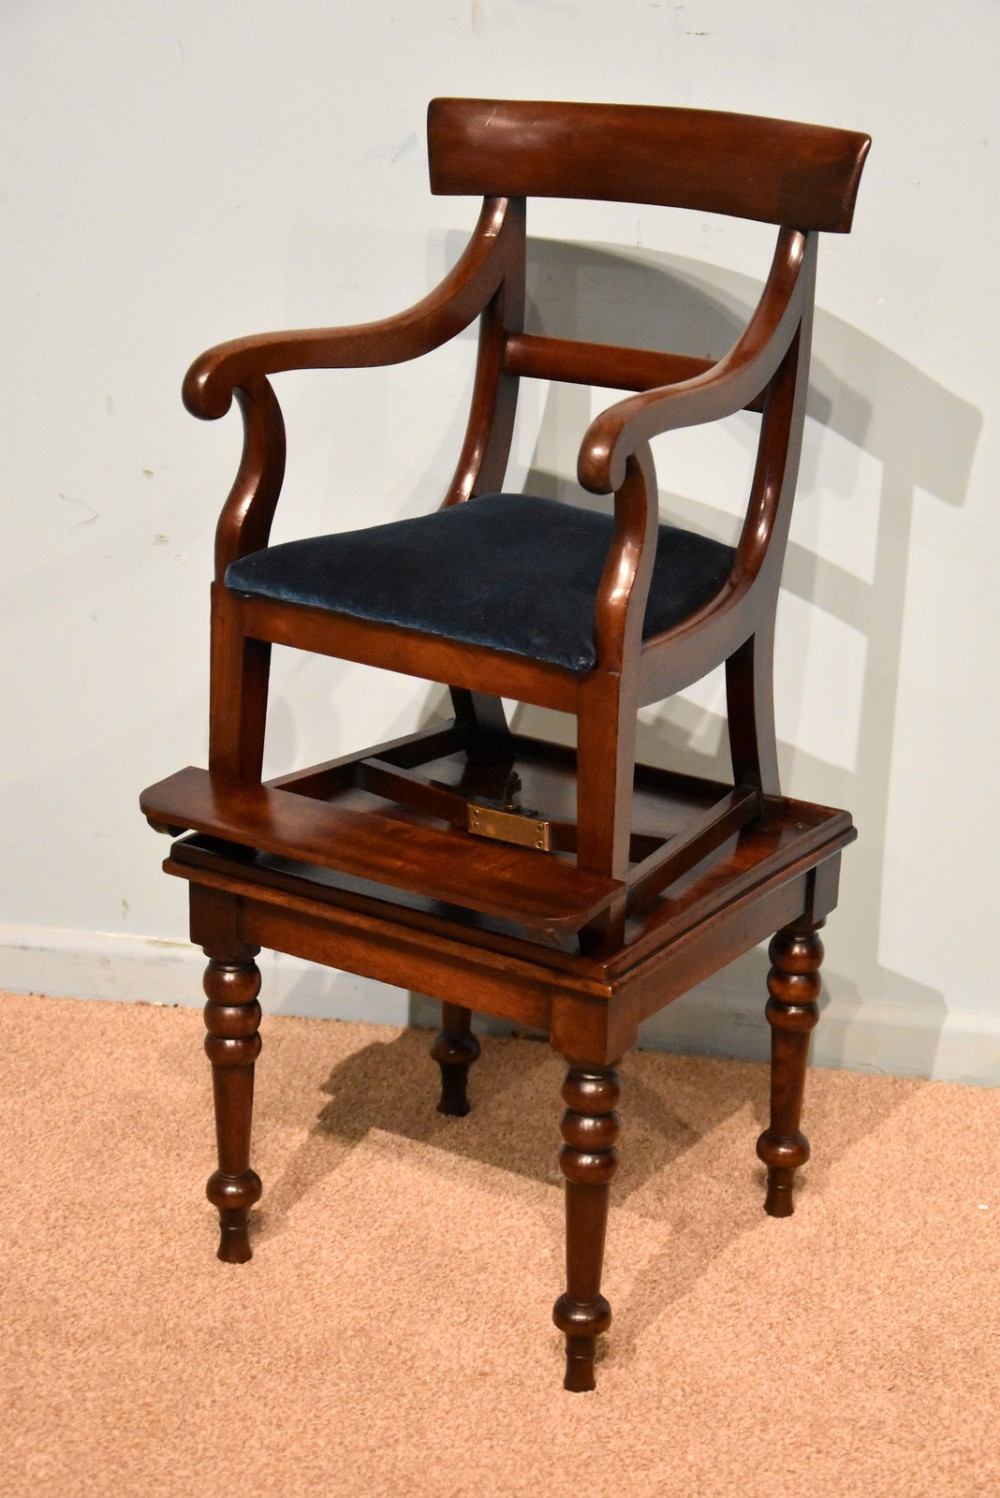 regency mahogany childs high chair and table